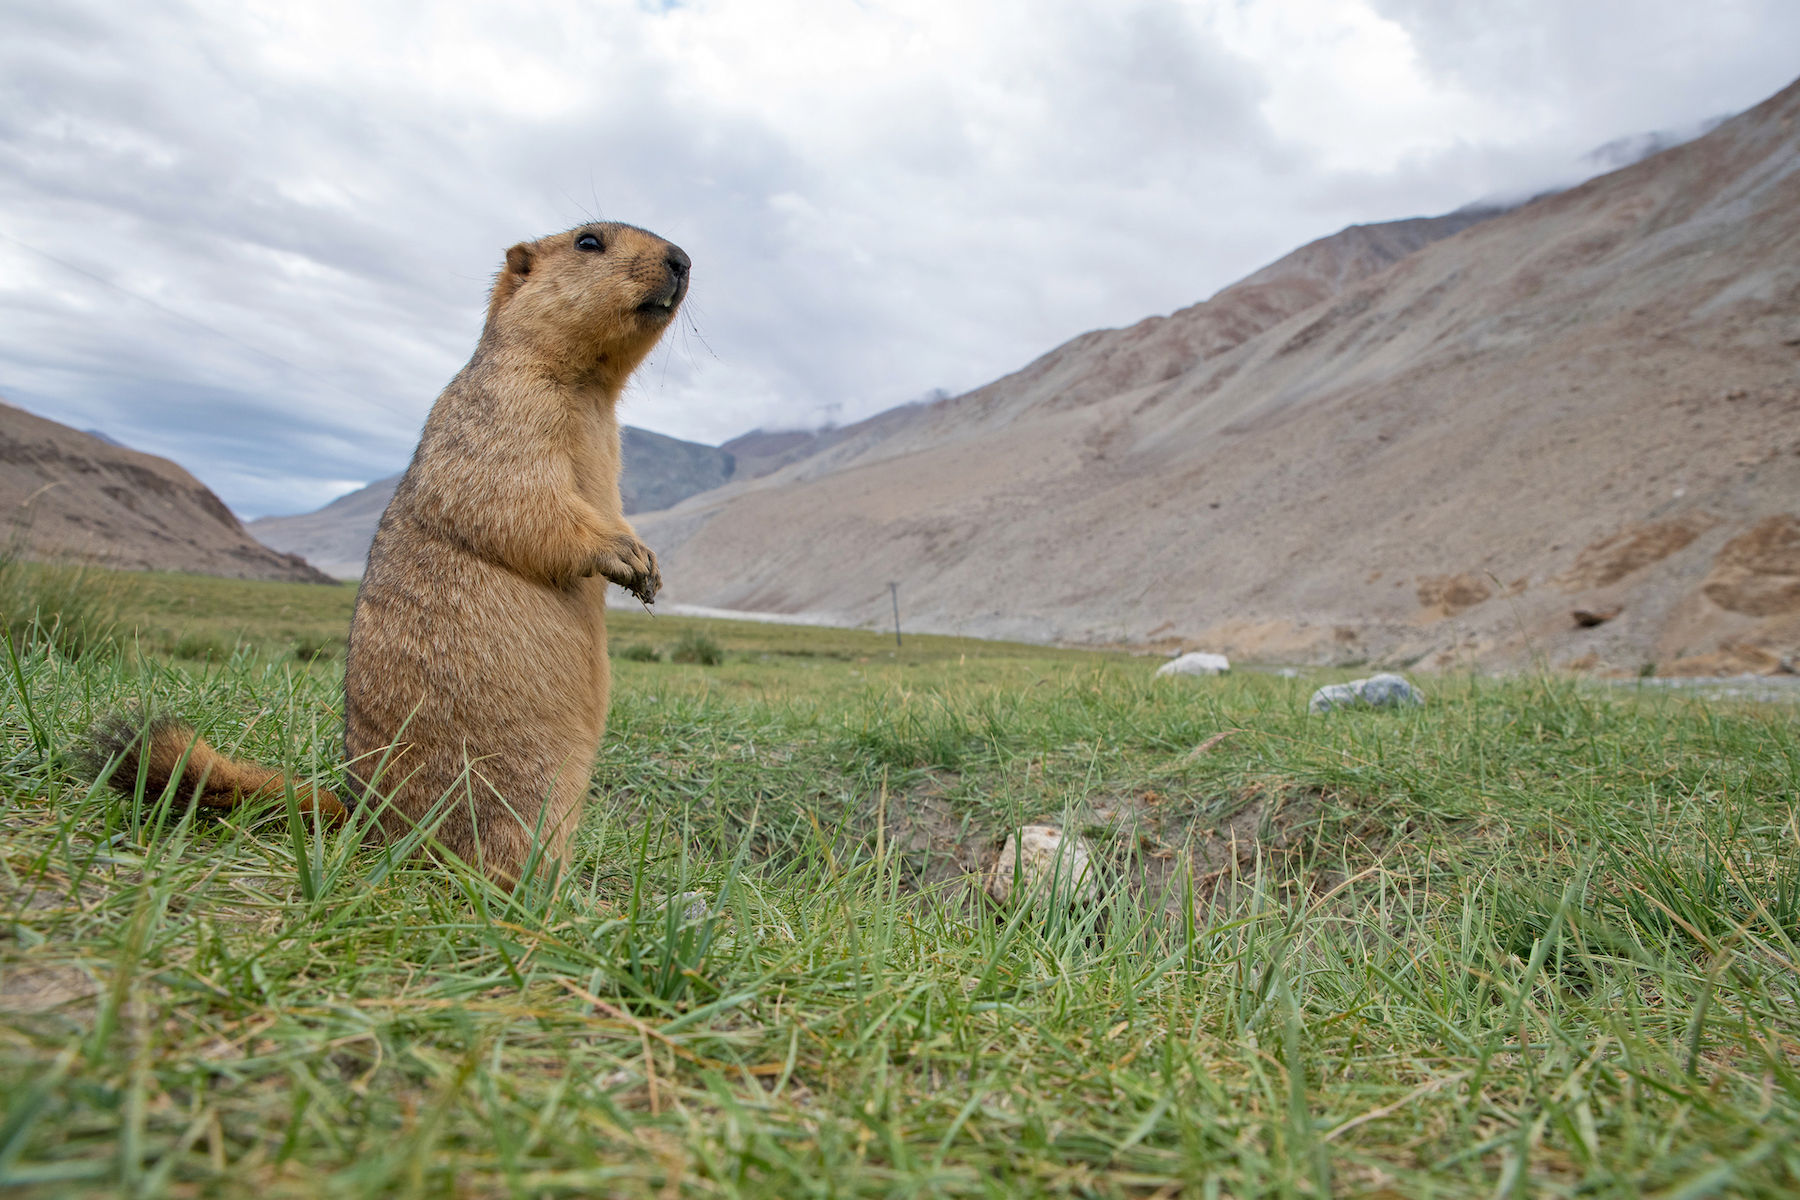 When they are outside their burrows, some marmots will be on high alert, scanning the area for predators. They stand on their hind legs for better visibility on the ready to warn others and run into a burrow. Photo: Saurabh Sawant </br> Himalayan marmots live in groups of up to 30 individuals, who communicate with each other using whistling and chirping sounds. Cover Photo: Surya Ramachandran